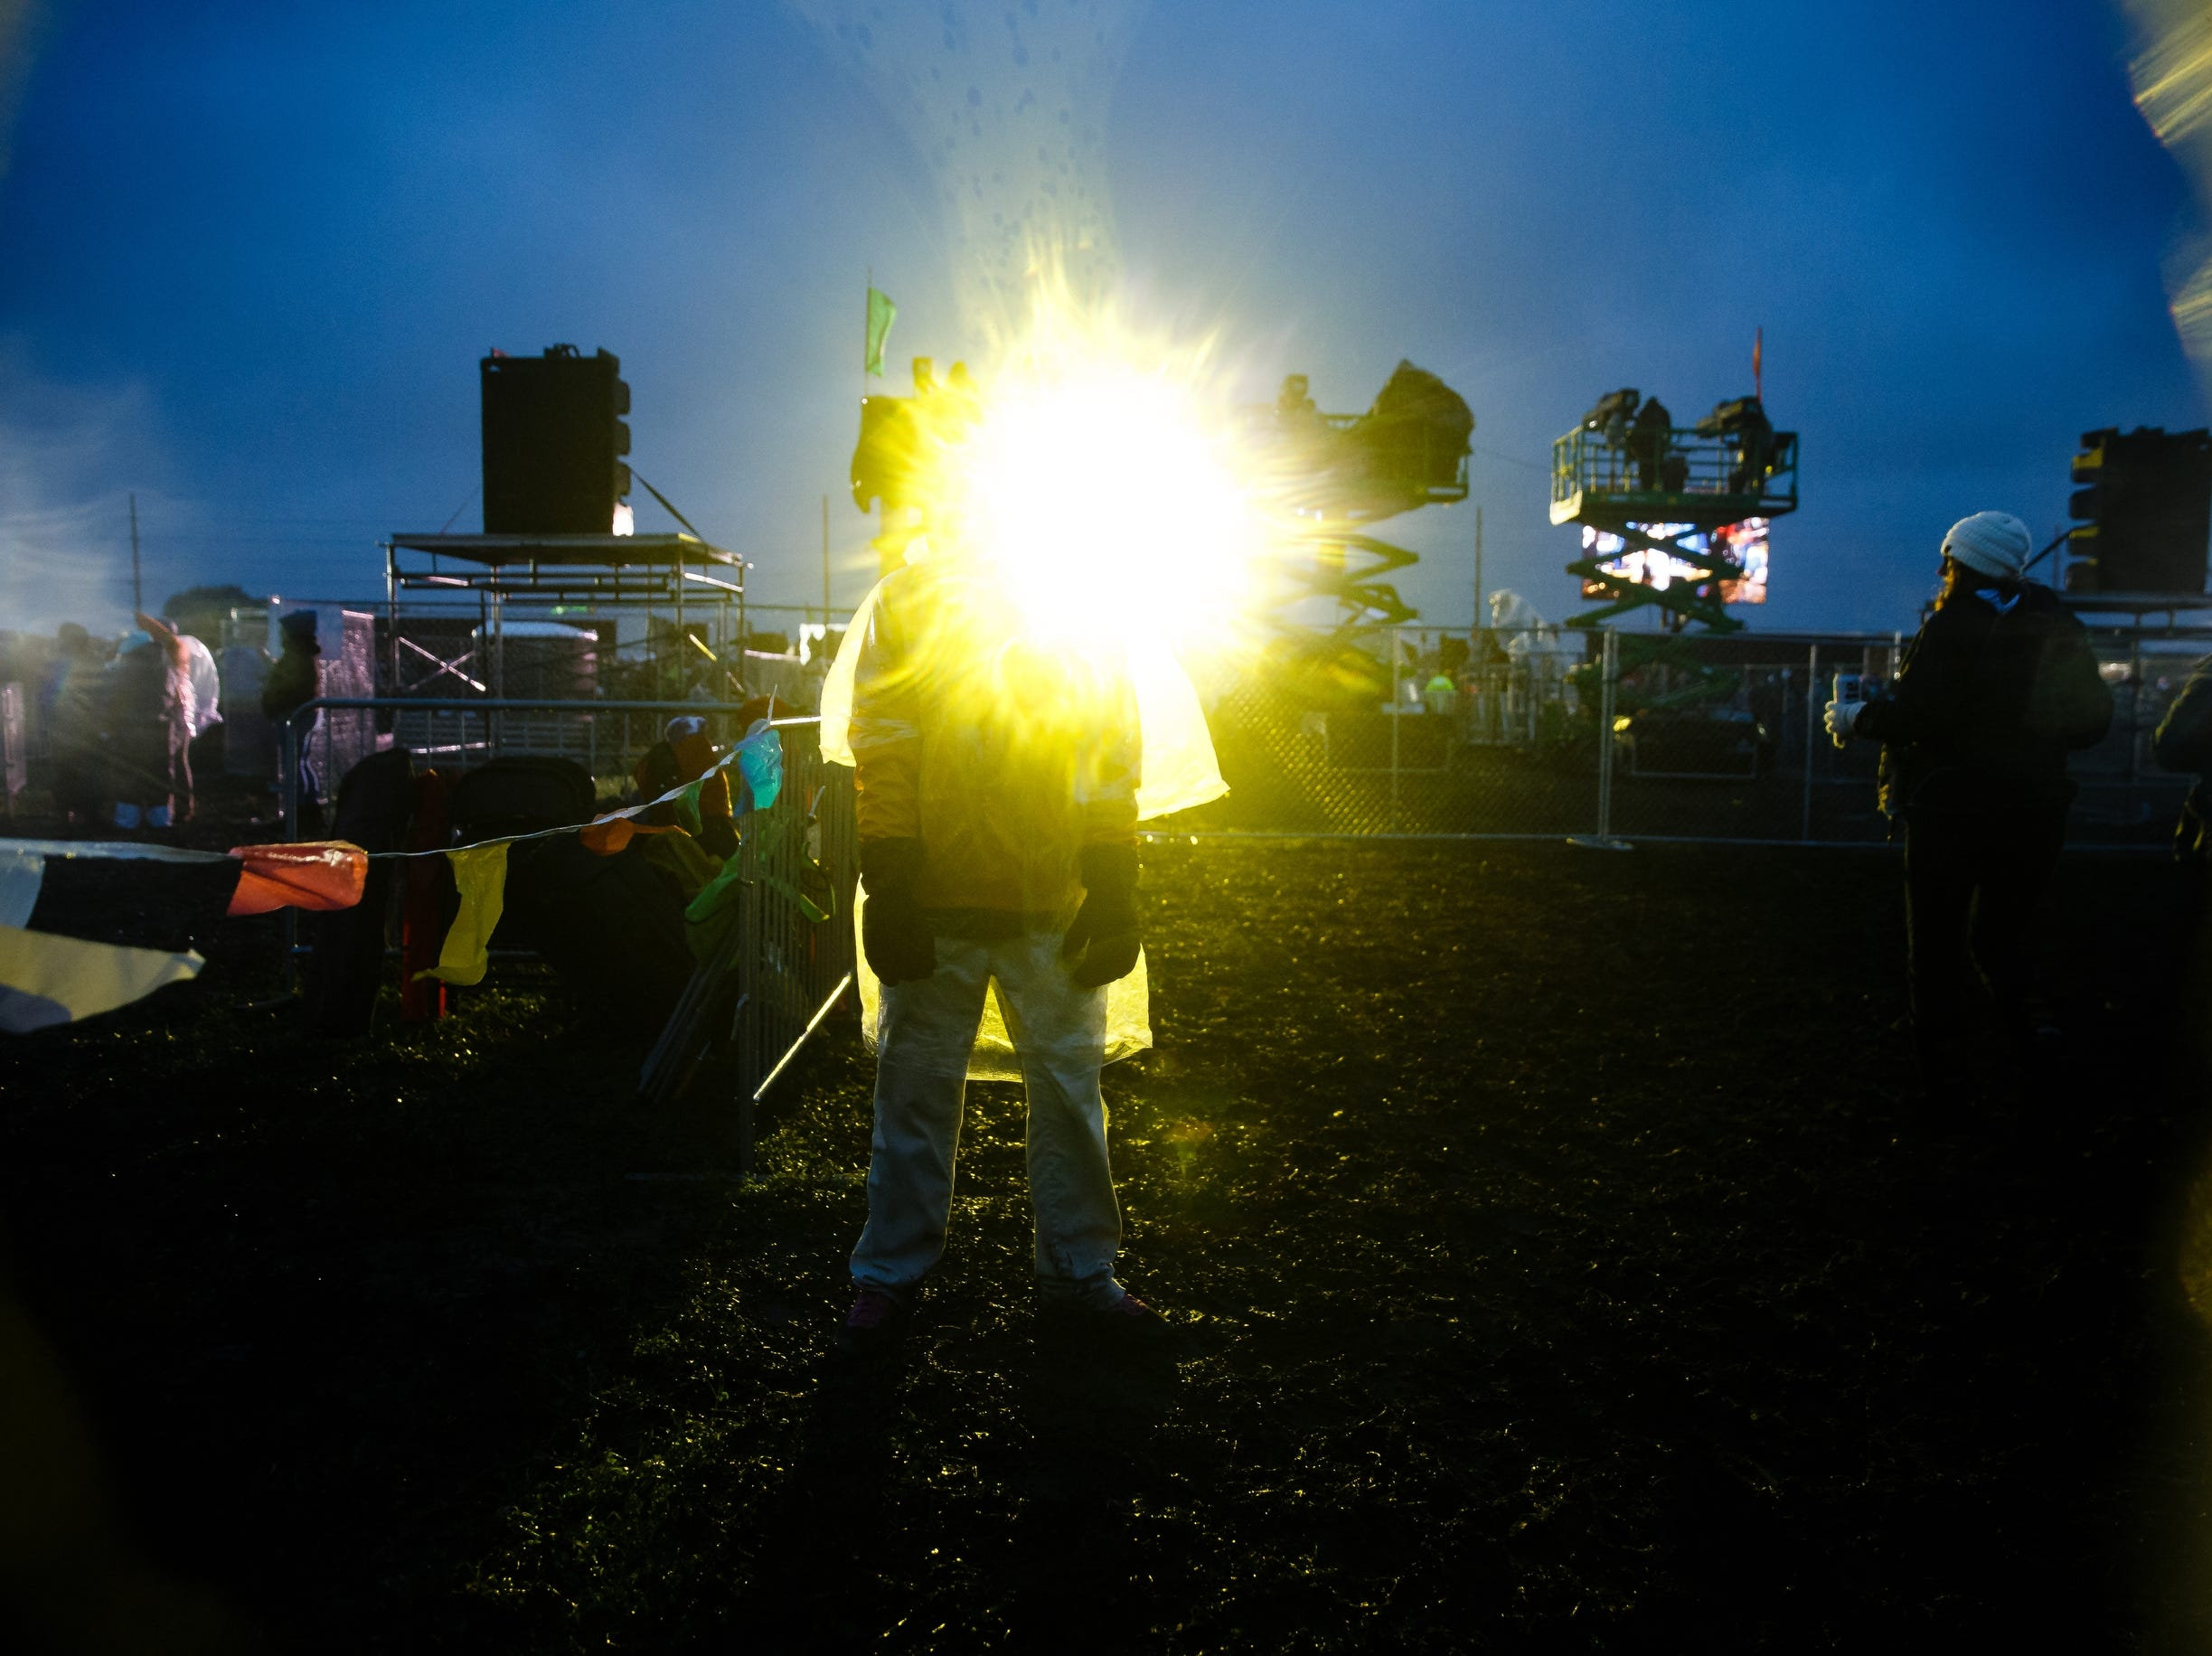 Security guards stand in the rain before Chase Rice performs during Luke Bryan's Farm Tour on Saturday, Sept. 29, 2018 in Boone.